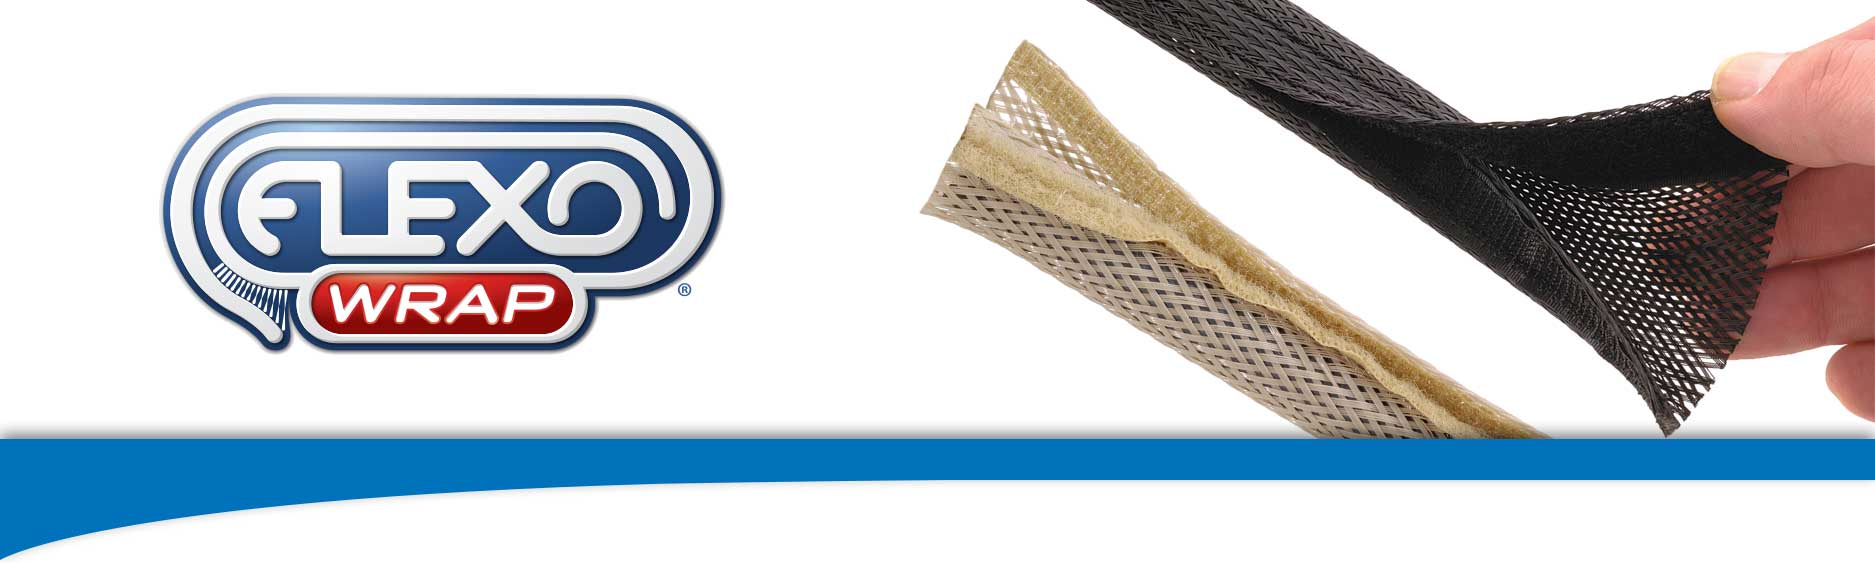 Flexo Wrap Hook & Loop wraparound Sleeving